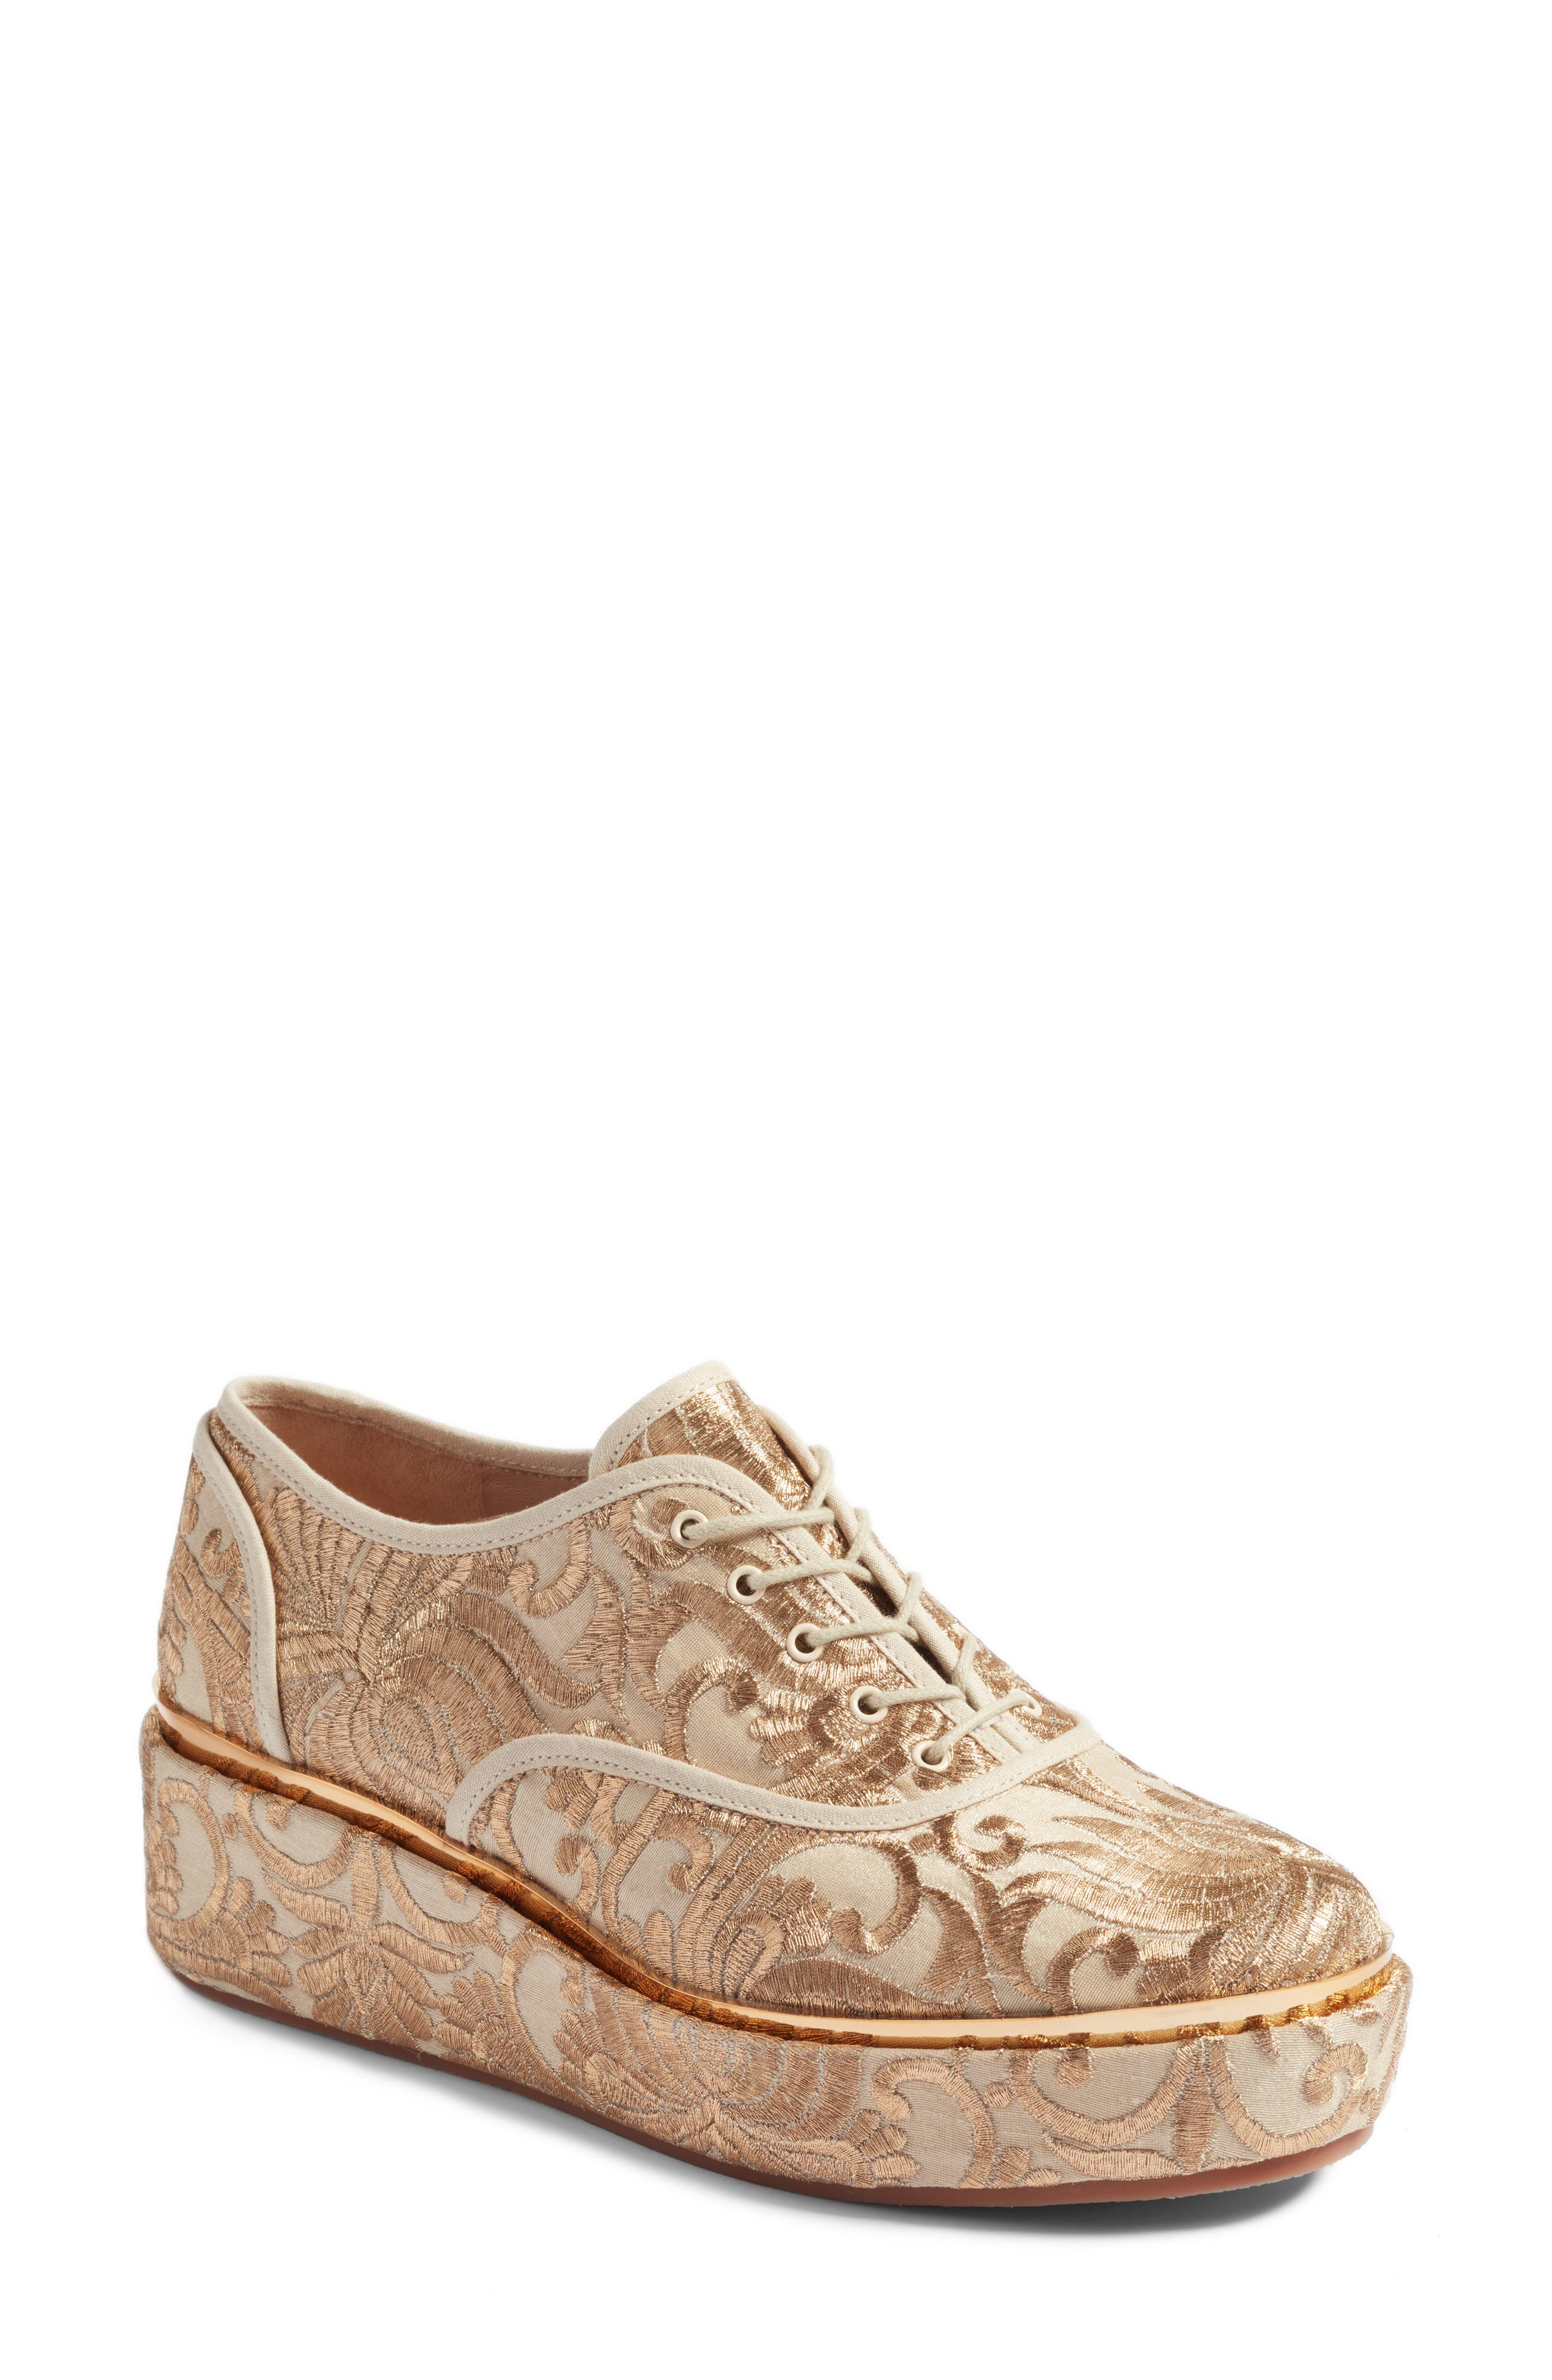 Arden Platform Oxford,                         Main,                         color, Beige/ Gold Nayan Brocade